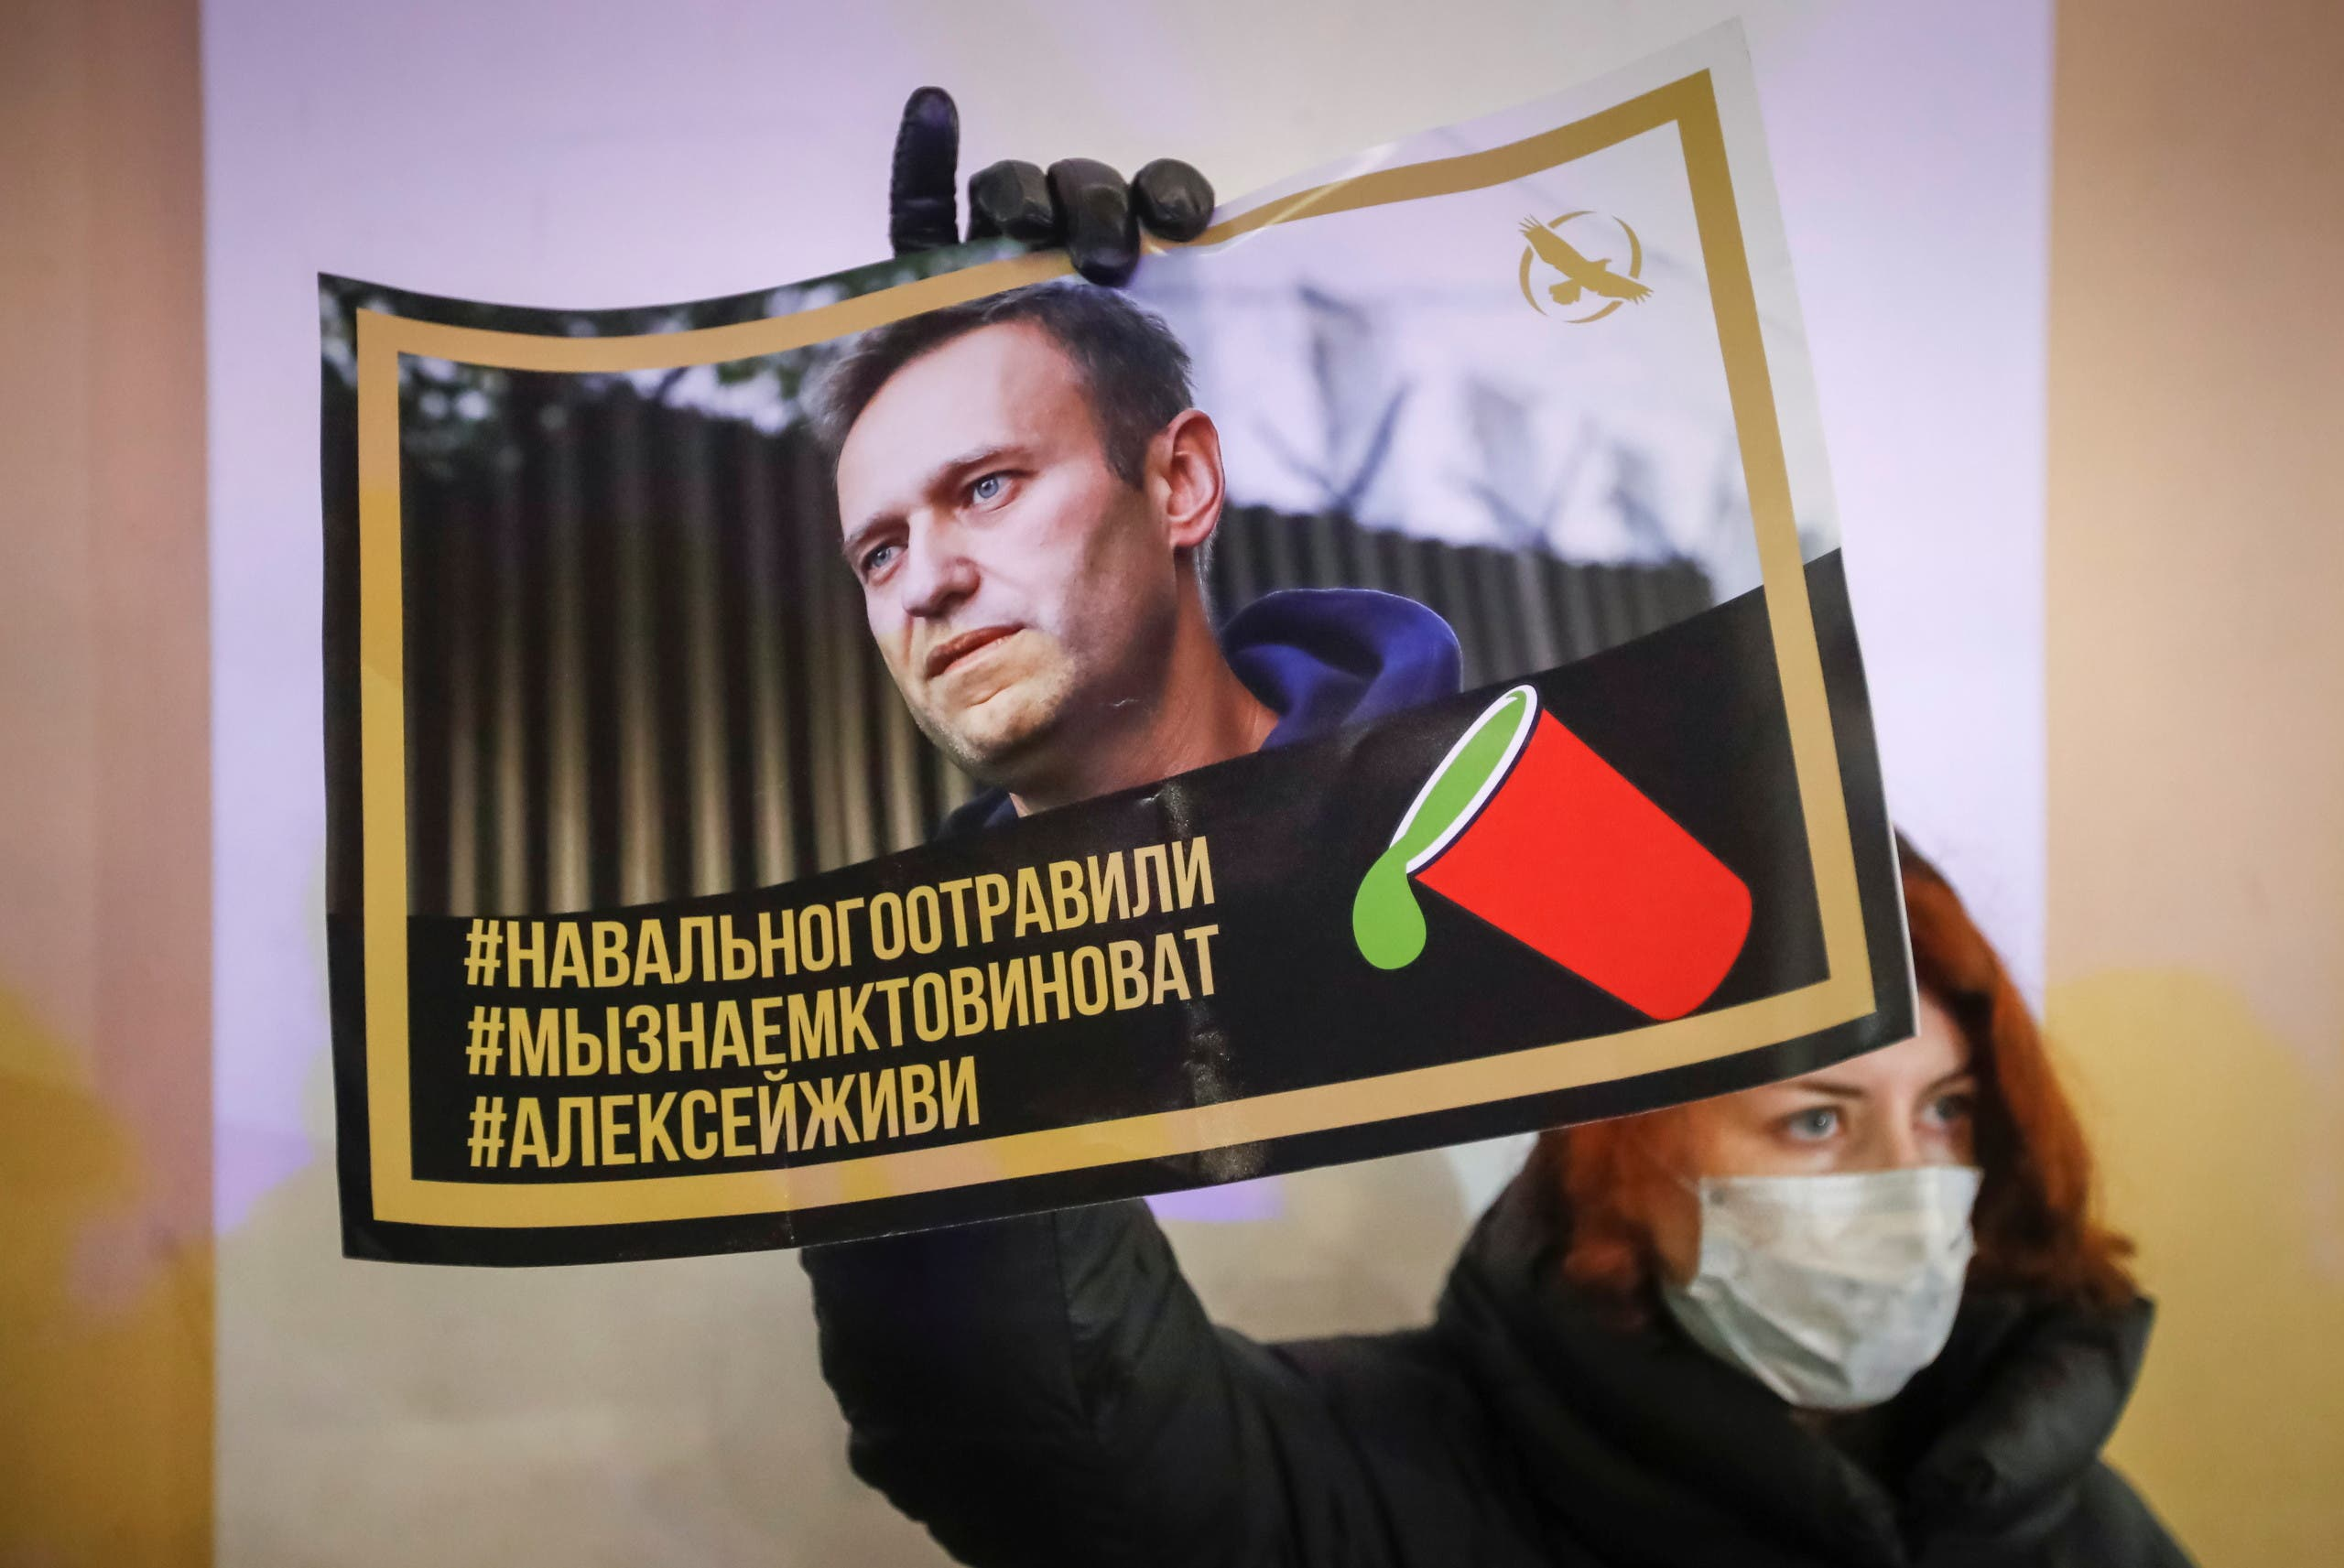 An activist holds a portrait of opposition politician Alexei Navalny during a picket in his support in St Petersburg, Russia December 22, 2020. (Reuters)